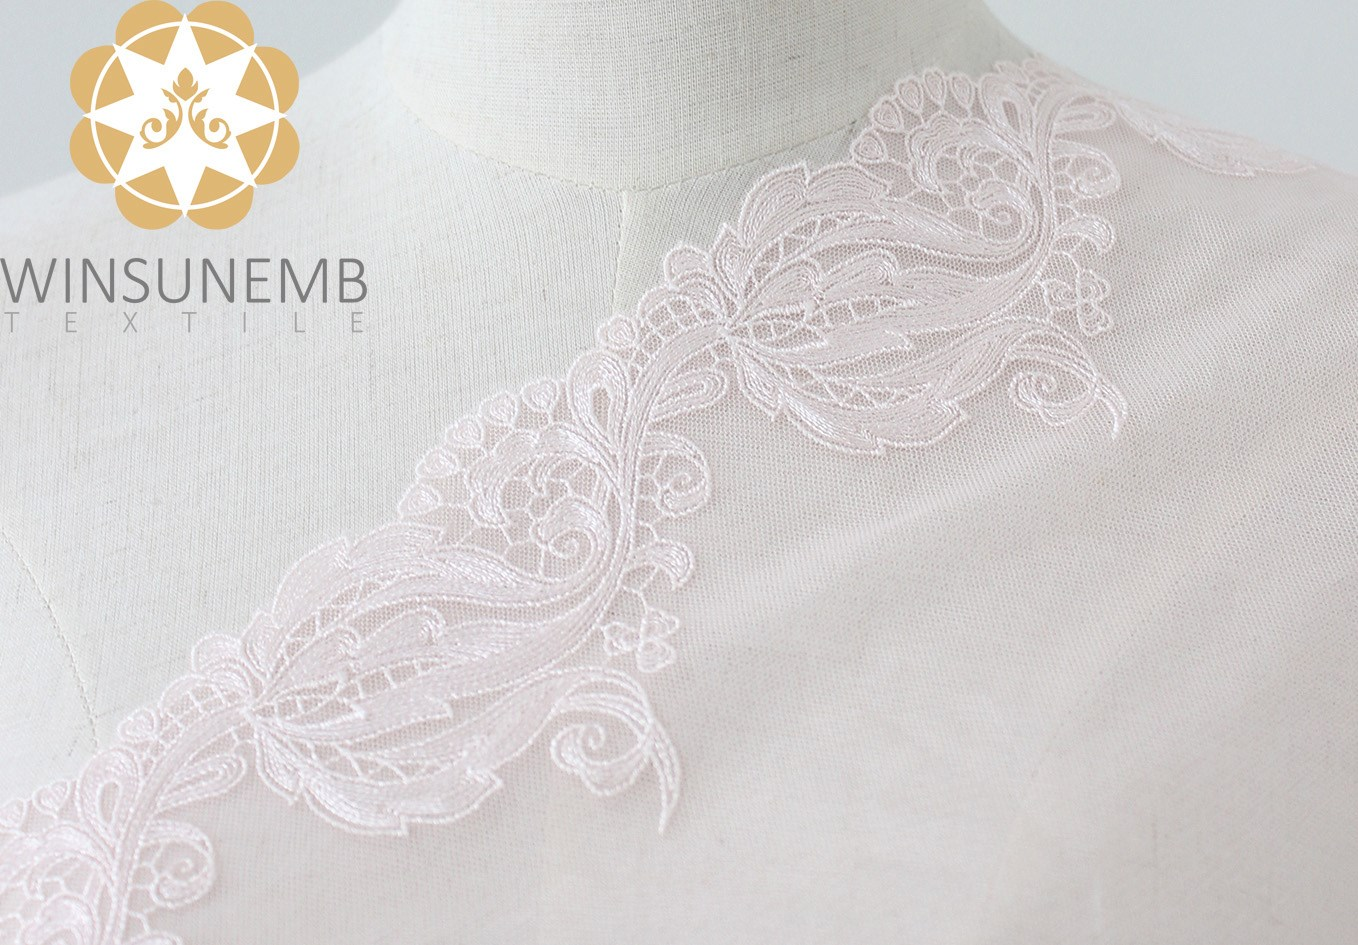 Winsunemb -Lace Fabric | Surrounded By Love Mermaid Single-wave Embroidery Lace Trimming 21 Cm-1